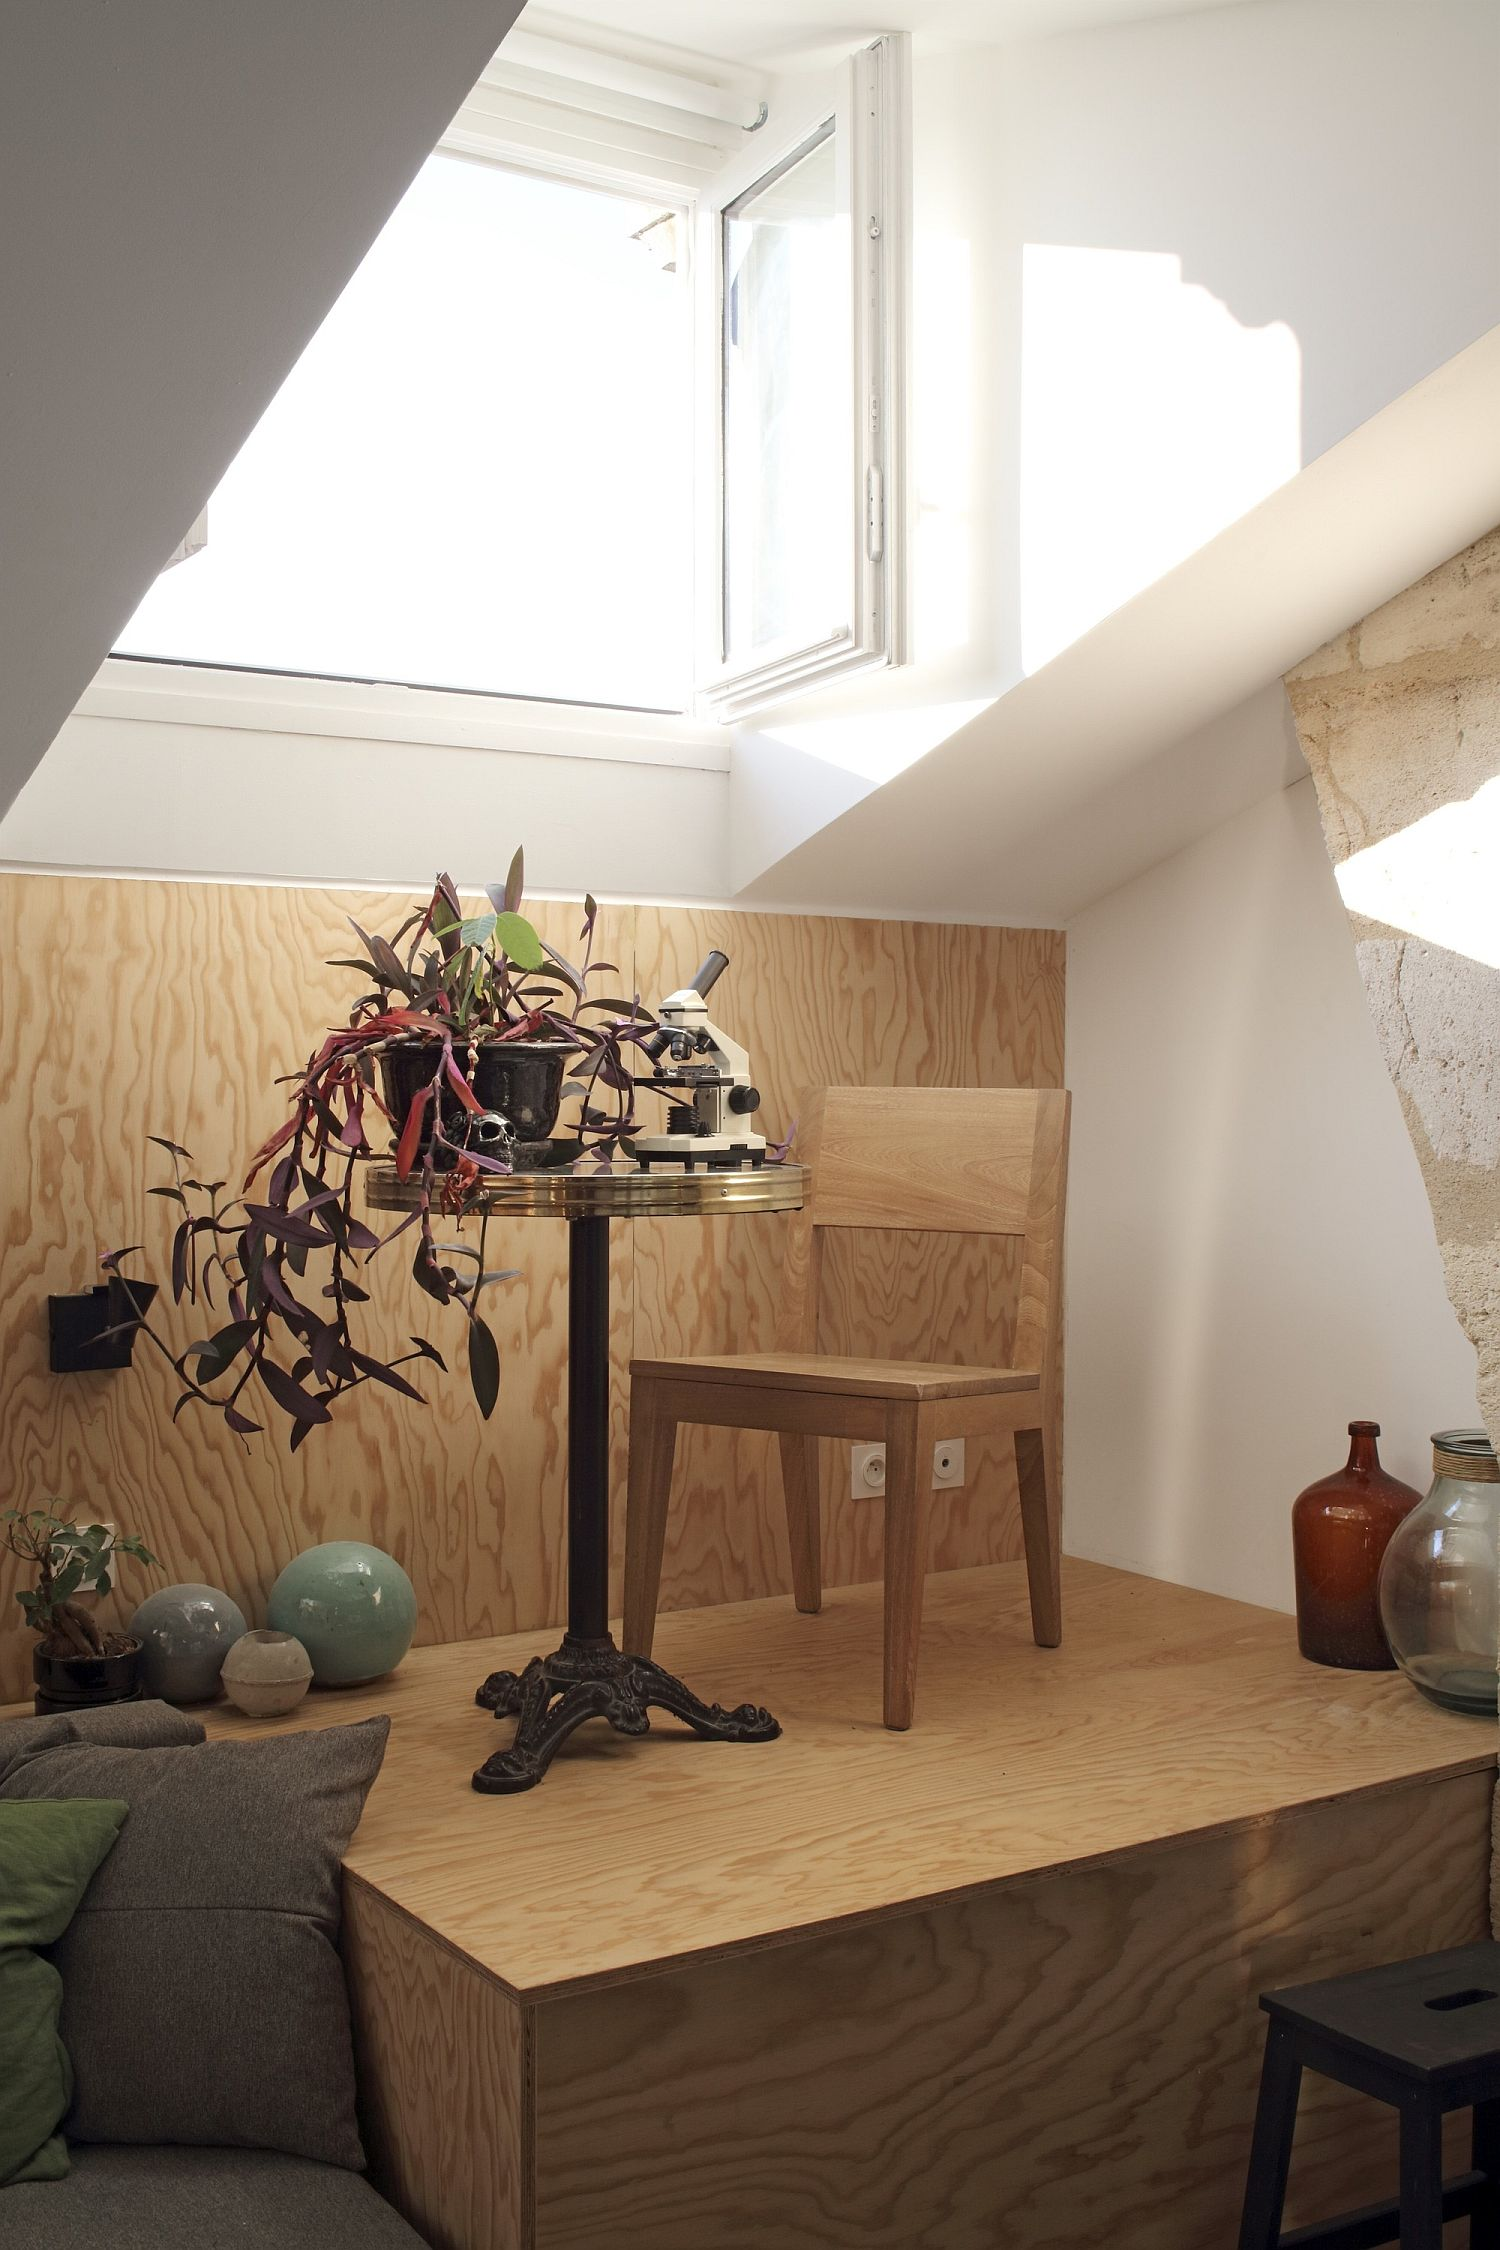 Upper window brings ample light into the small apartment